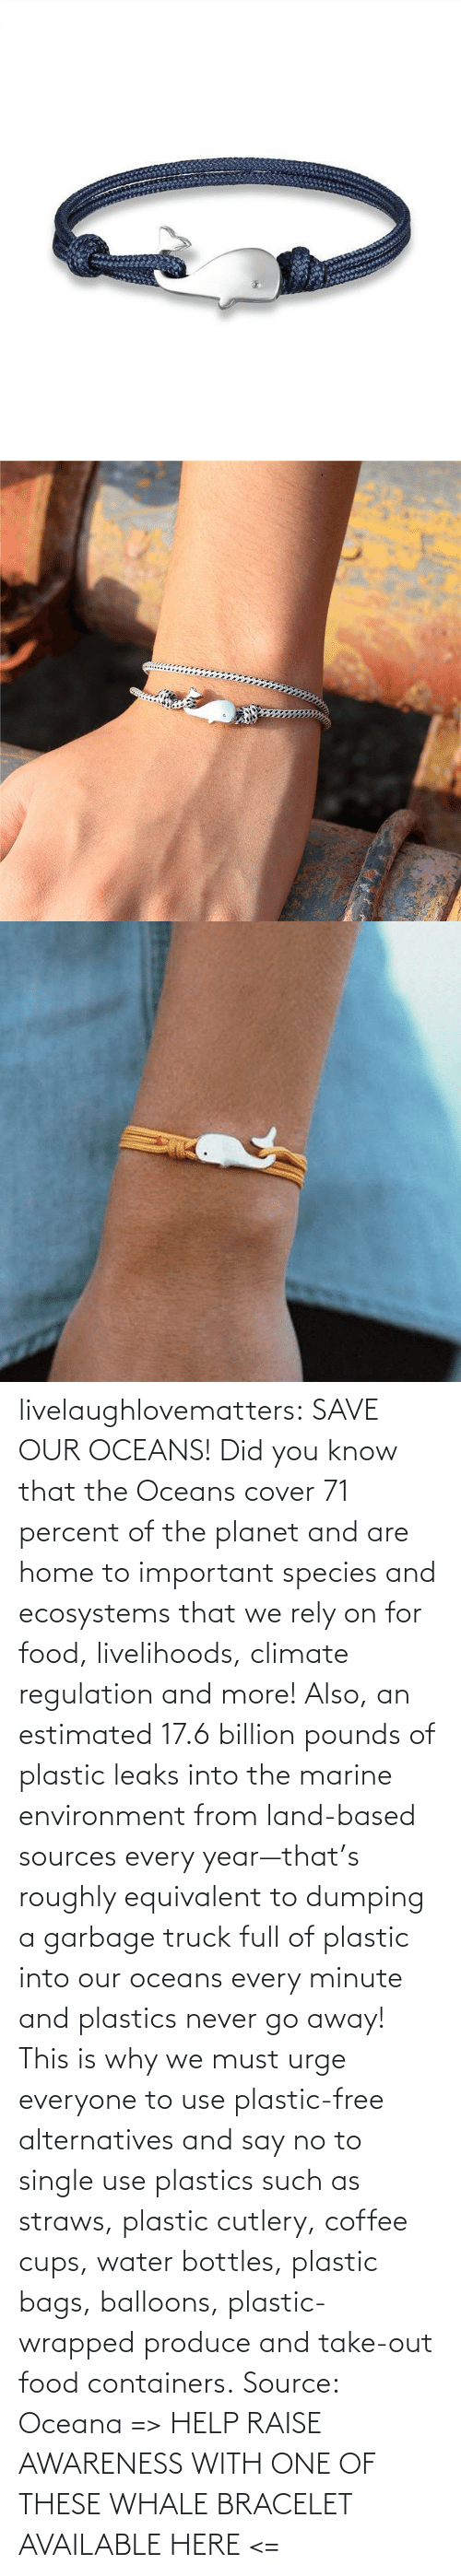 tumblr: livelaughlovematters: SAVE OUR OCEANS!  Did you know that the Oceans cover 71 percent of the planet and are home to important species and ecosystems that we rely on for food, livelihoods, climate regulation and more! Also, an estimated 17.6 billion pounds of plastic leaks into the marine environment from land-based sources every year—that's roughly equivalent to dumping a garbage truck full of plastic into our oceans every minute and plastics never go away! This is why we must urge everyone to use plastic-free alternatives and say no to single use plastics such as straws, plastic cutlery, coffee cups, water bottles, plastic bags, balloons, plastic-wrapped produce and take-out food containers. Source: Oceana => HELP RAISE AWARENESS WITH ONE OF THESE WHALE BRACELET AVAILABLE HERE <=